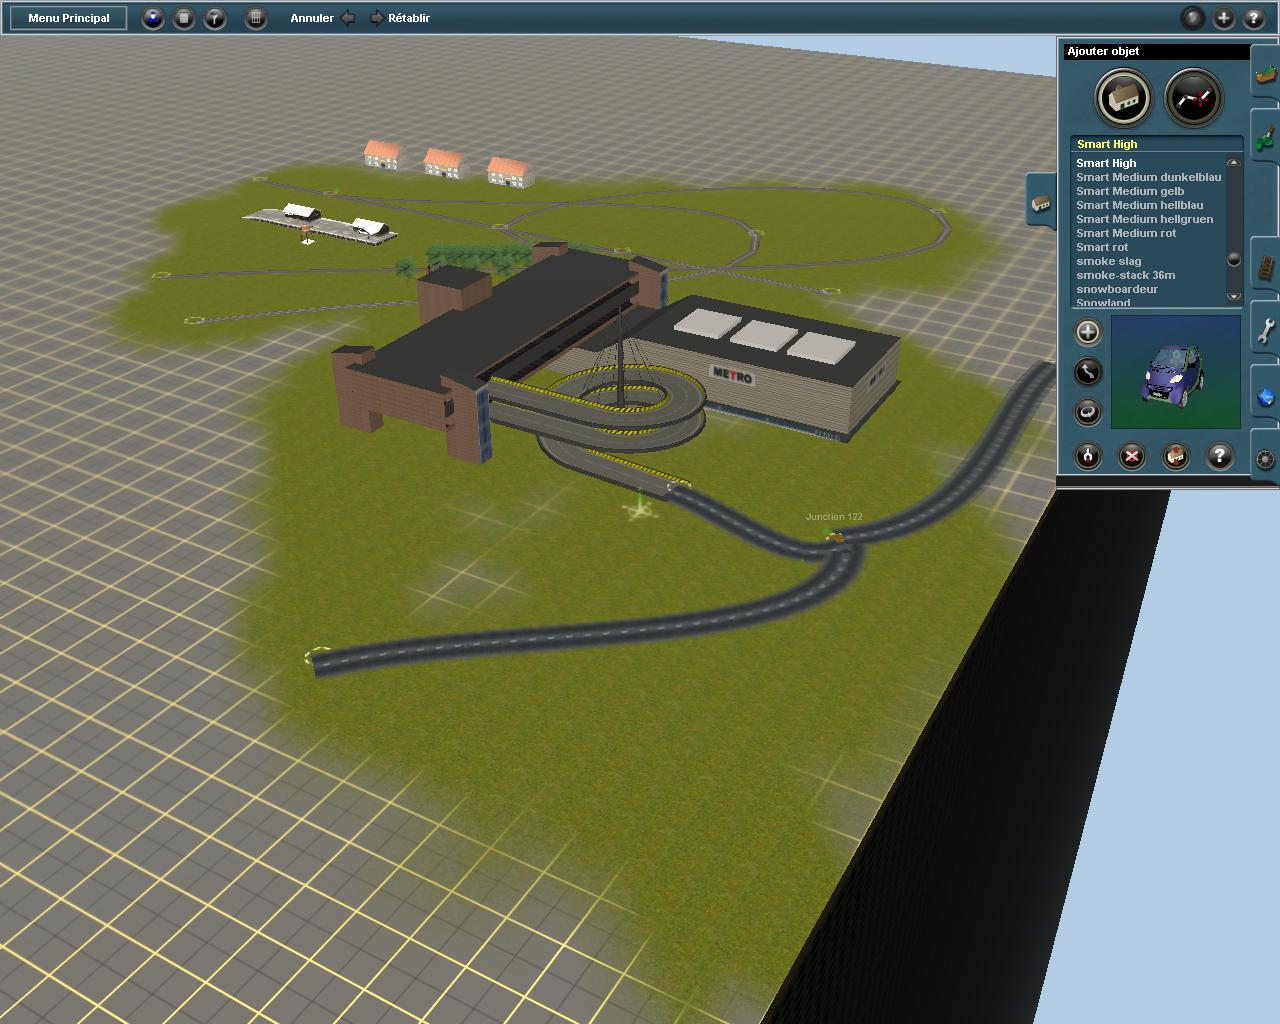 com Trainz Simulator 2009 : World Builder Edition - PC Image 27 sur 27